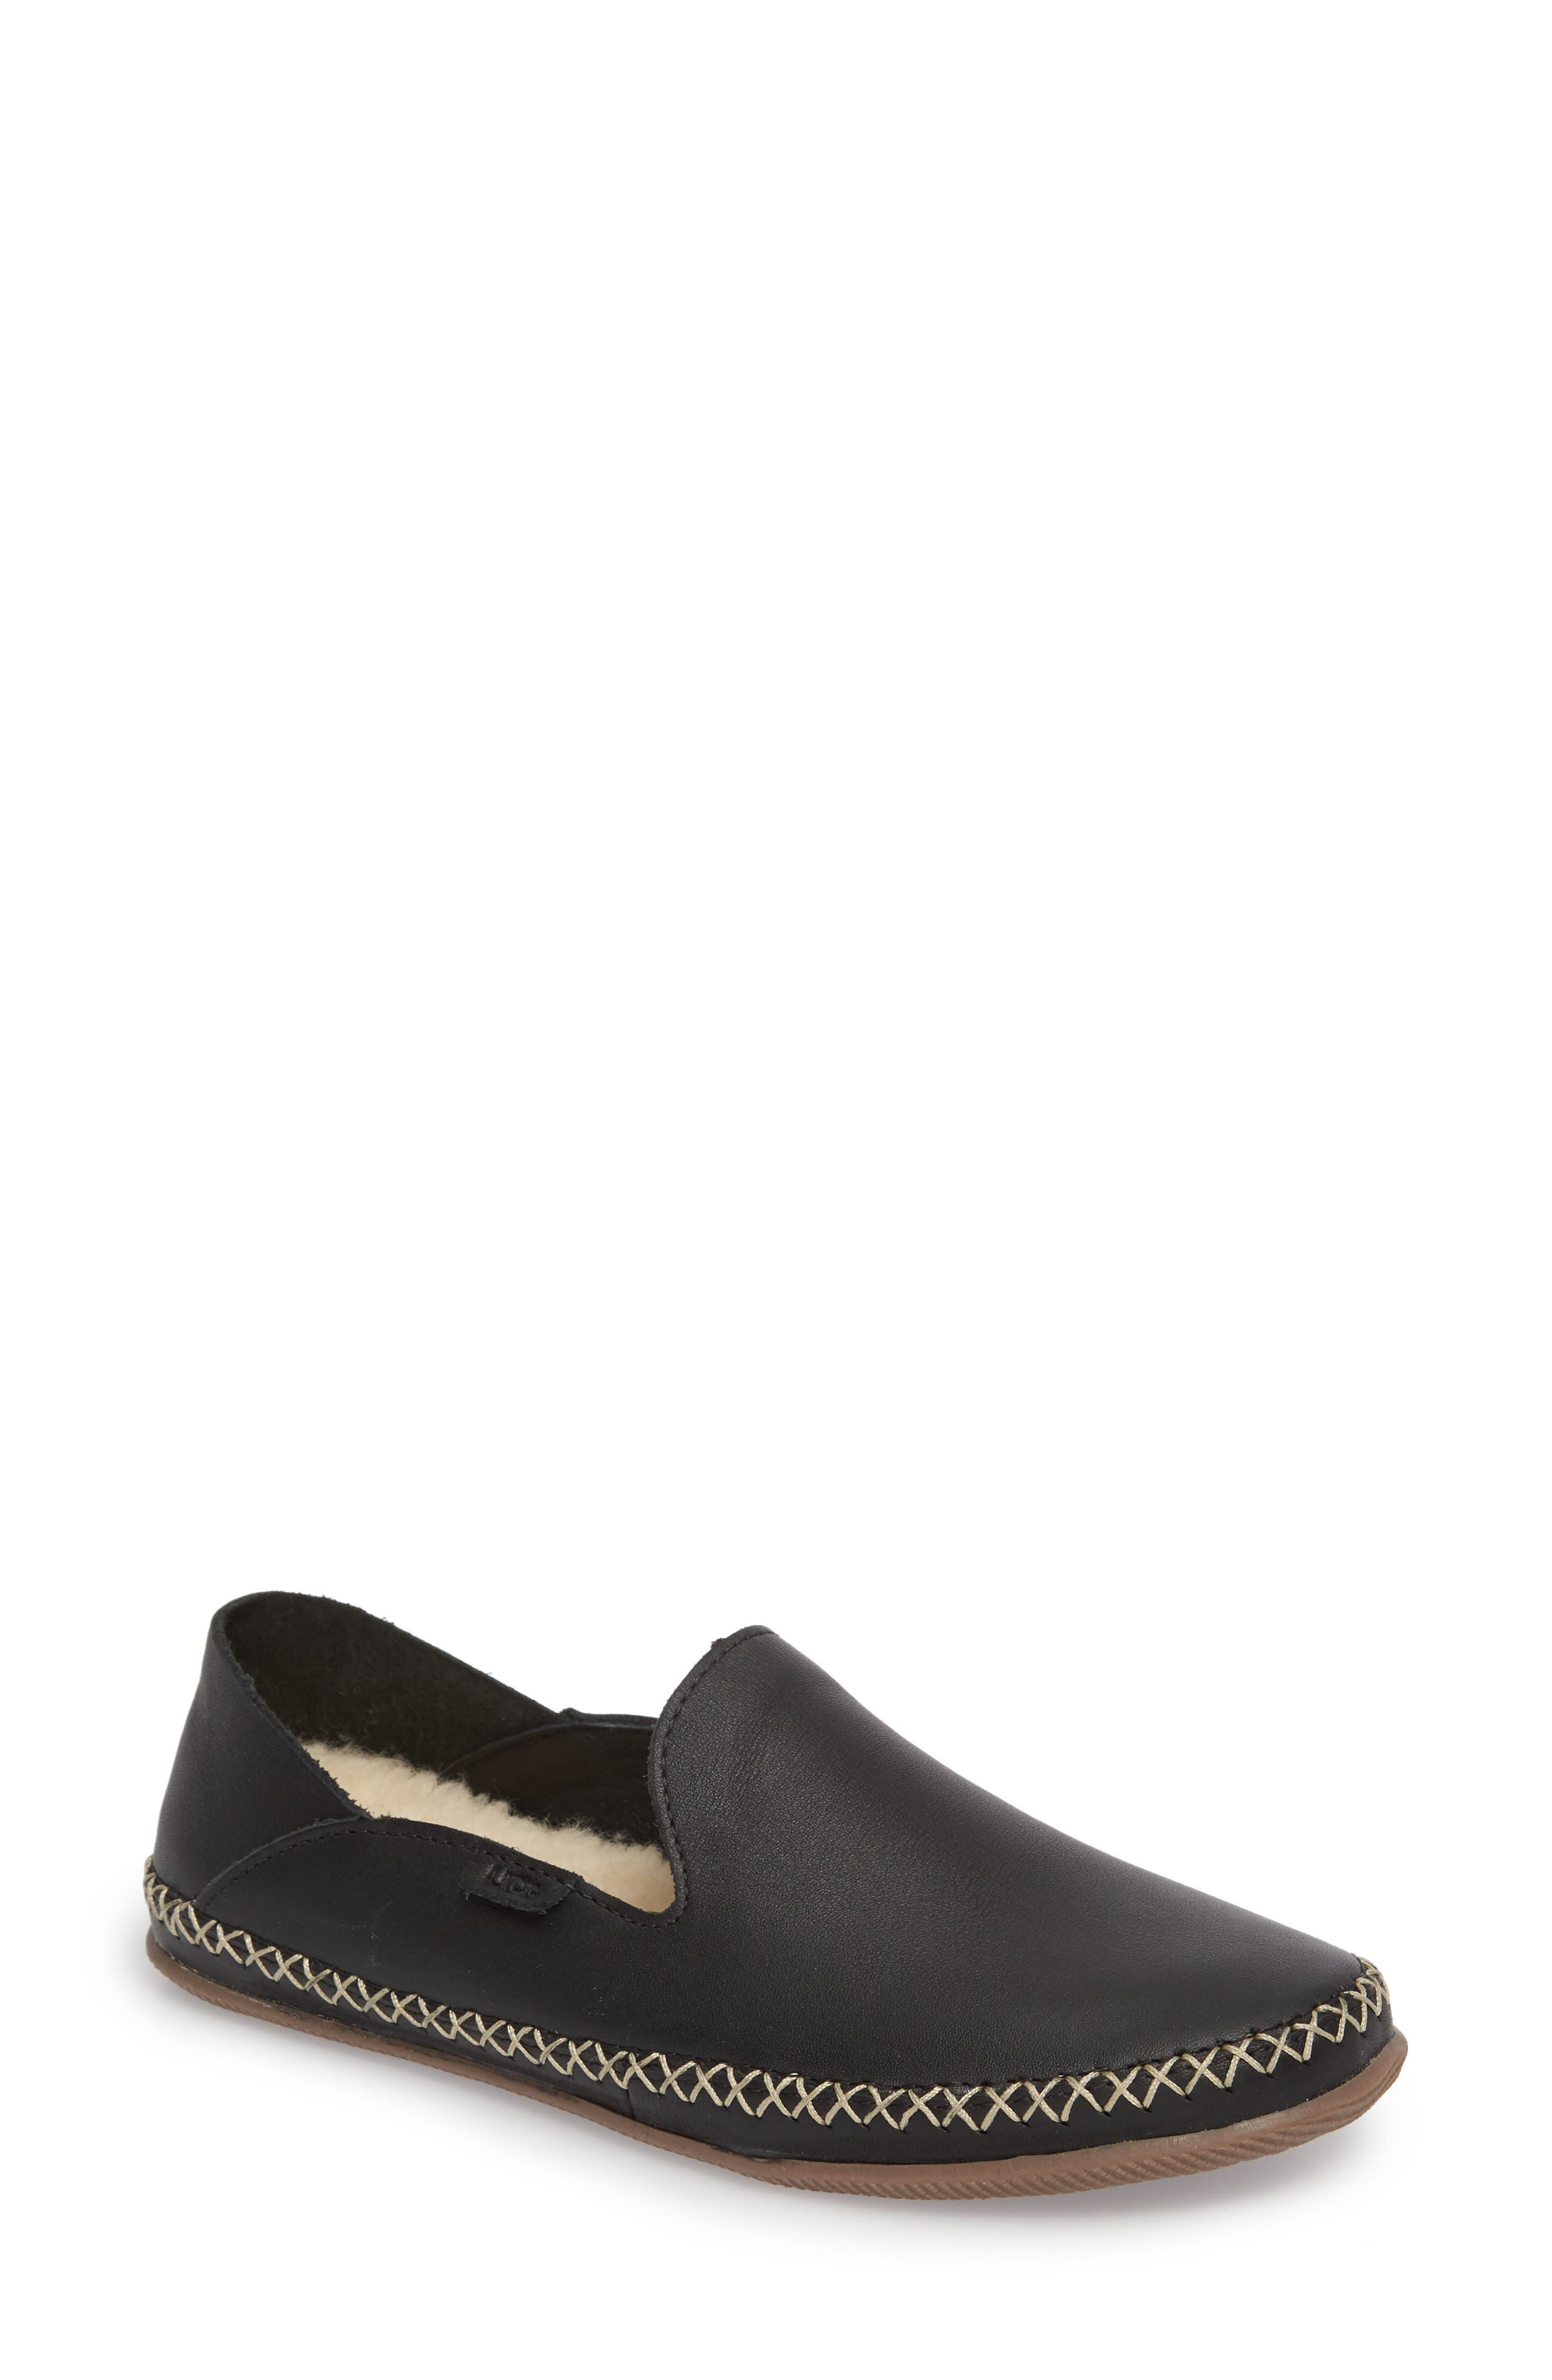 Elodie Flat,                         Main,                         color, Black Leather